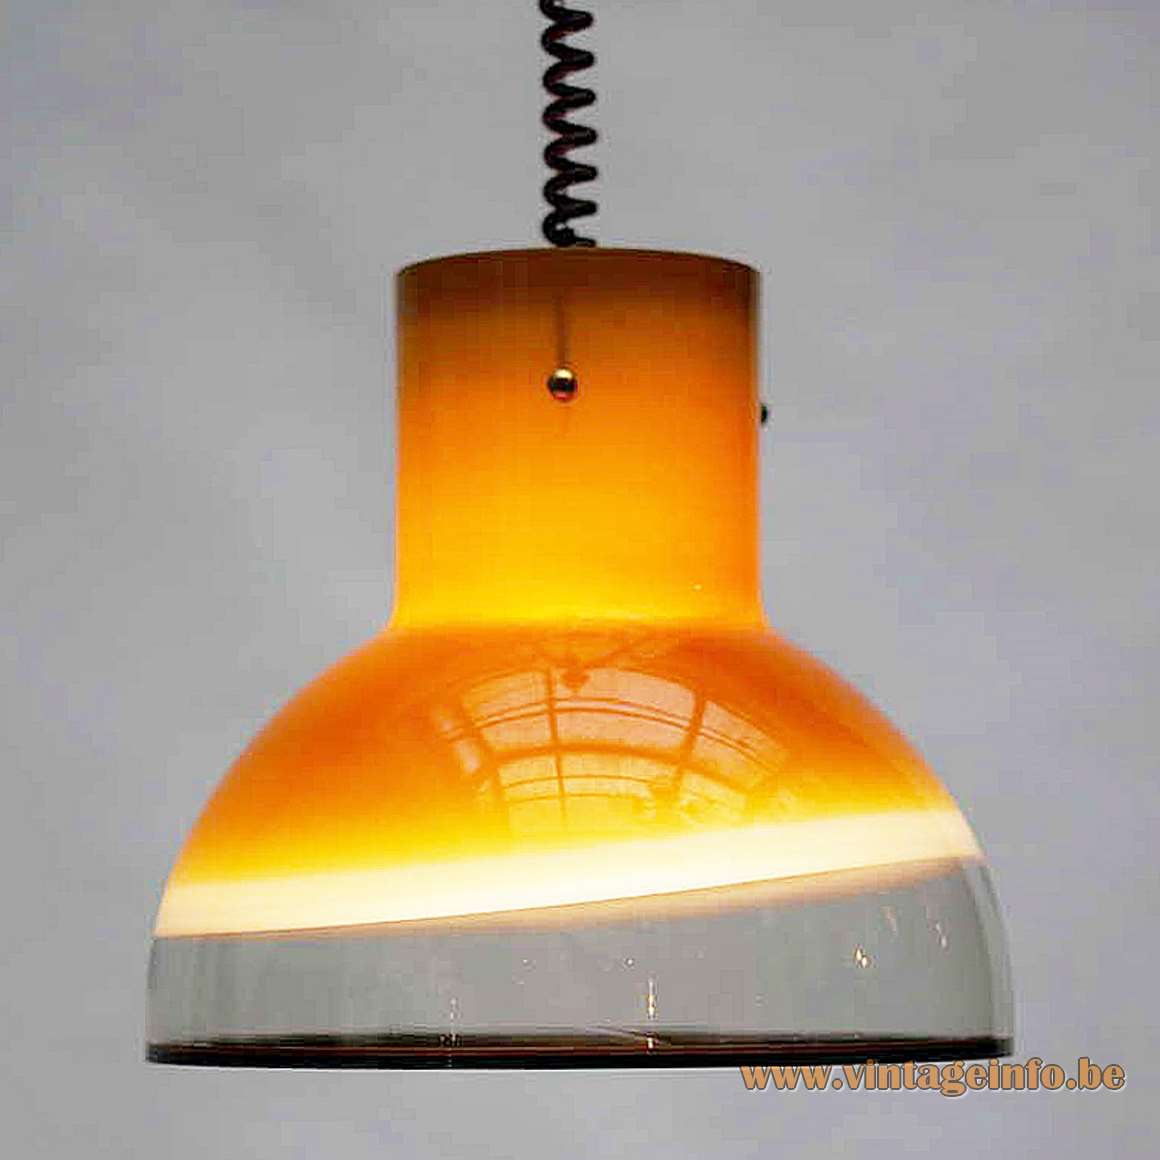 Peill + Putzler model 1415 pendant lamp brown yellow amber glass black rim rise & fall 1970s 1980s MCM